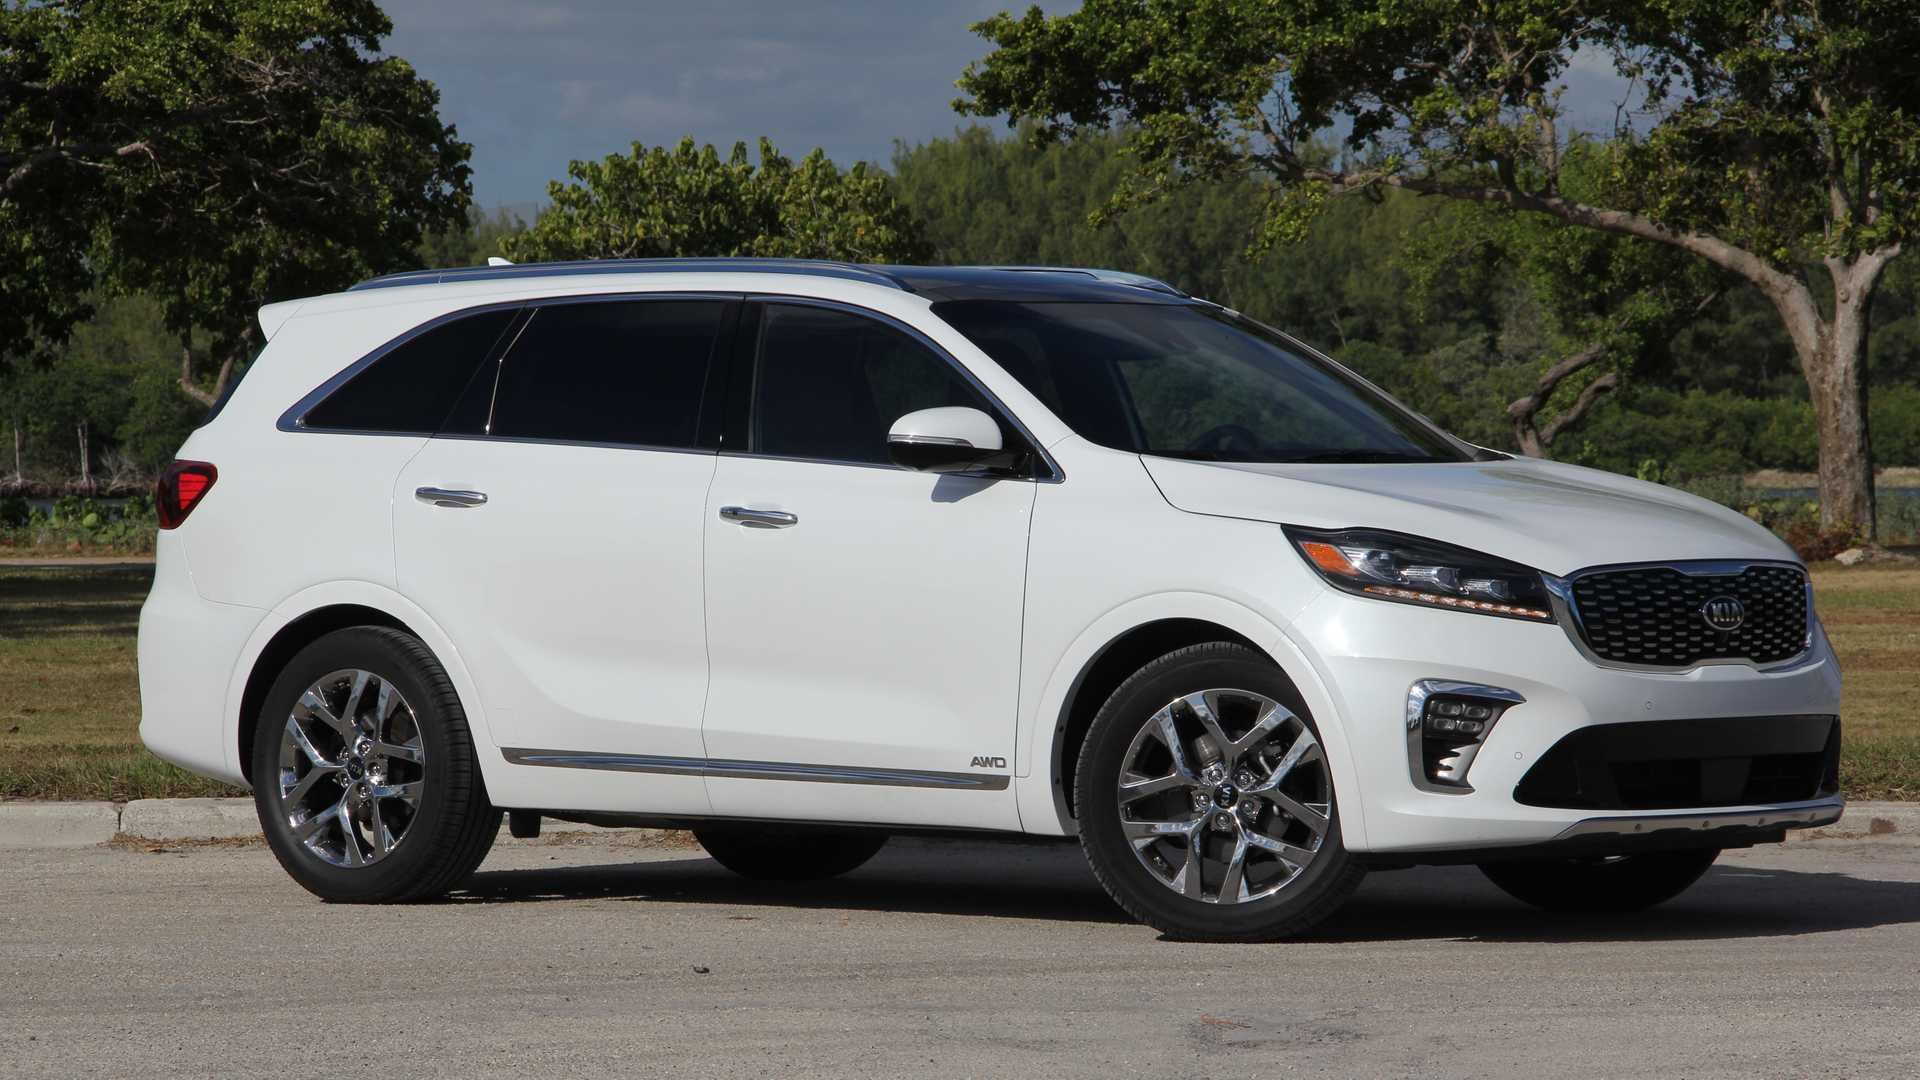 2021 Kia Sorento Sxl Limited Performance, Release Date pertaining to 2021 Kia Soul Colors, Feature, Release Date, Redesign